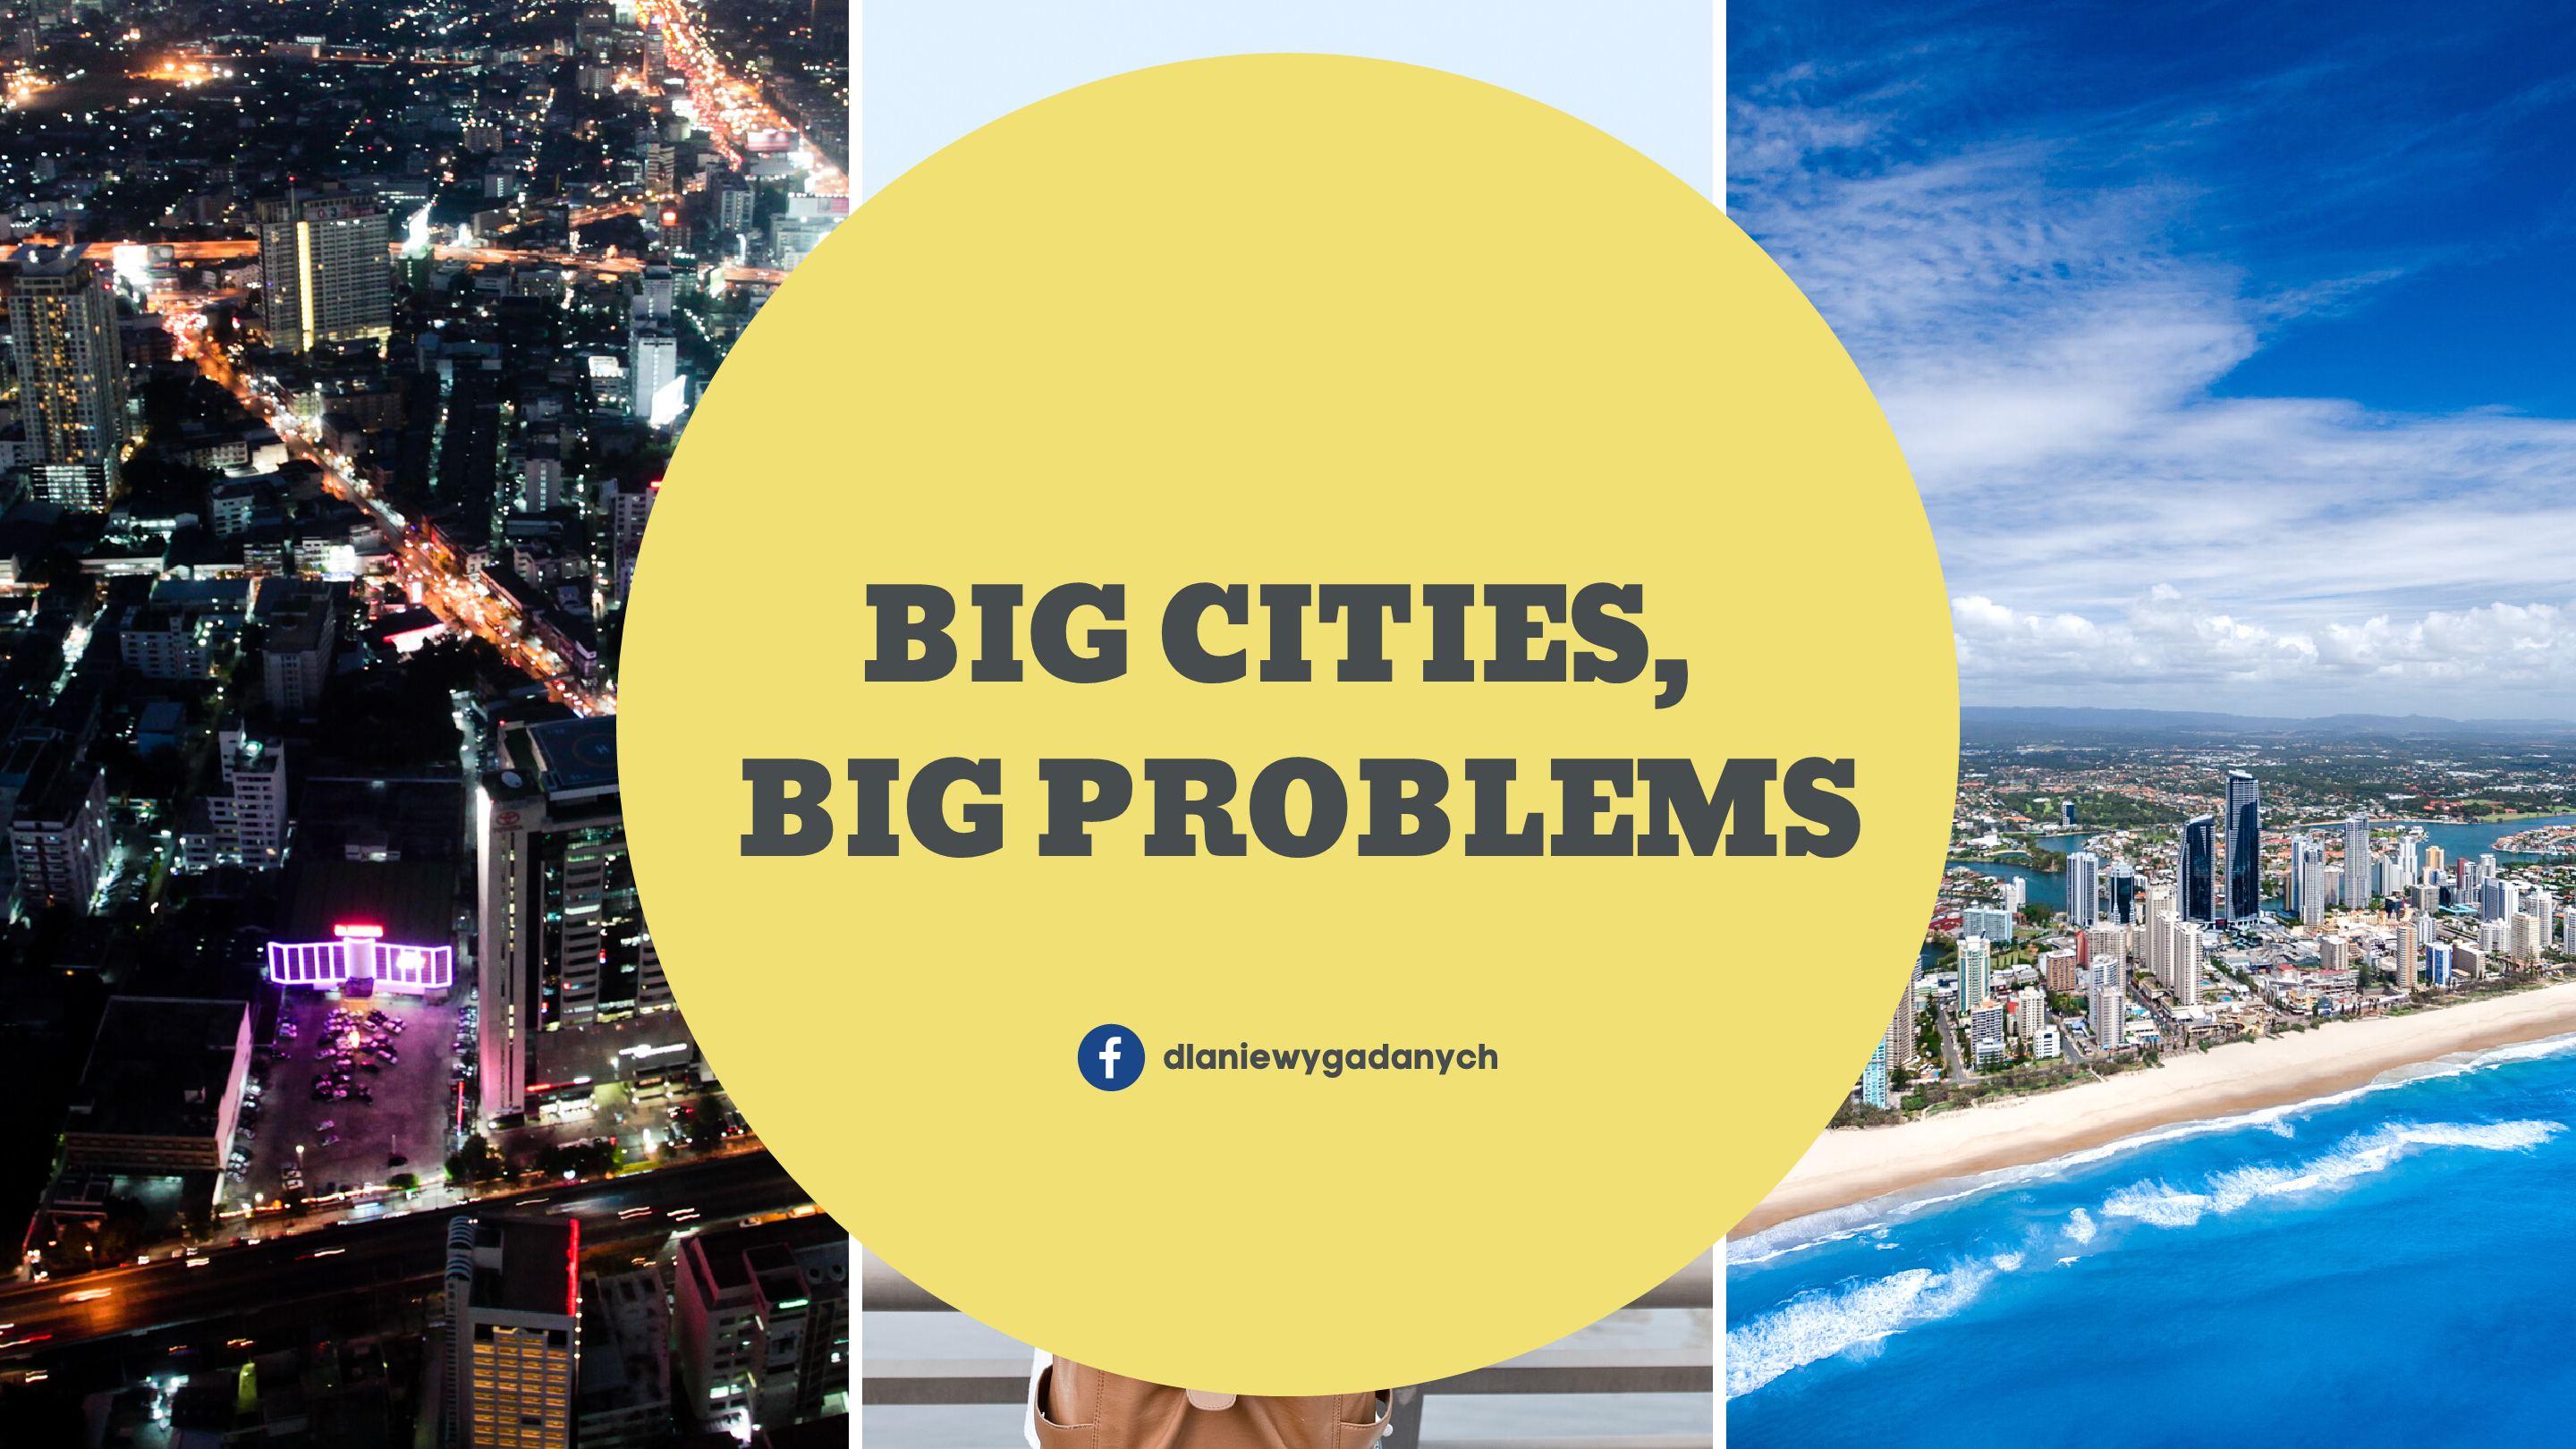 BIG CITIES, BIG PROBLEMS